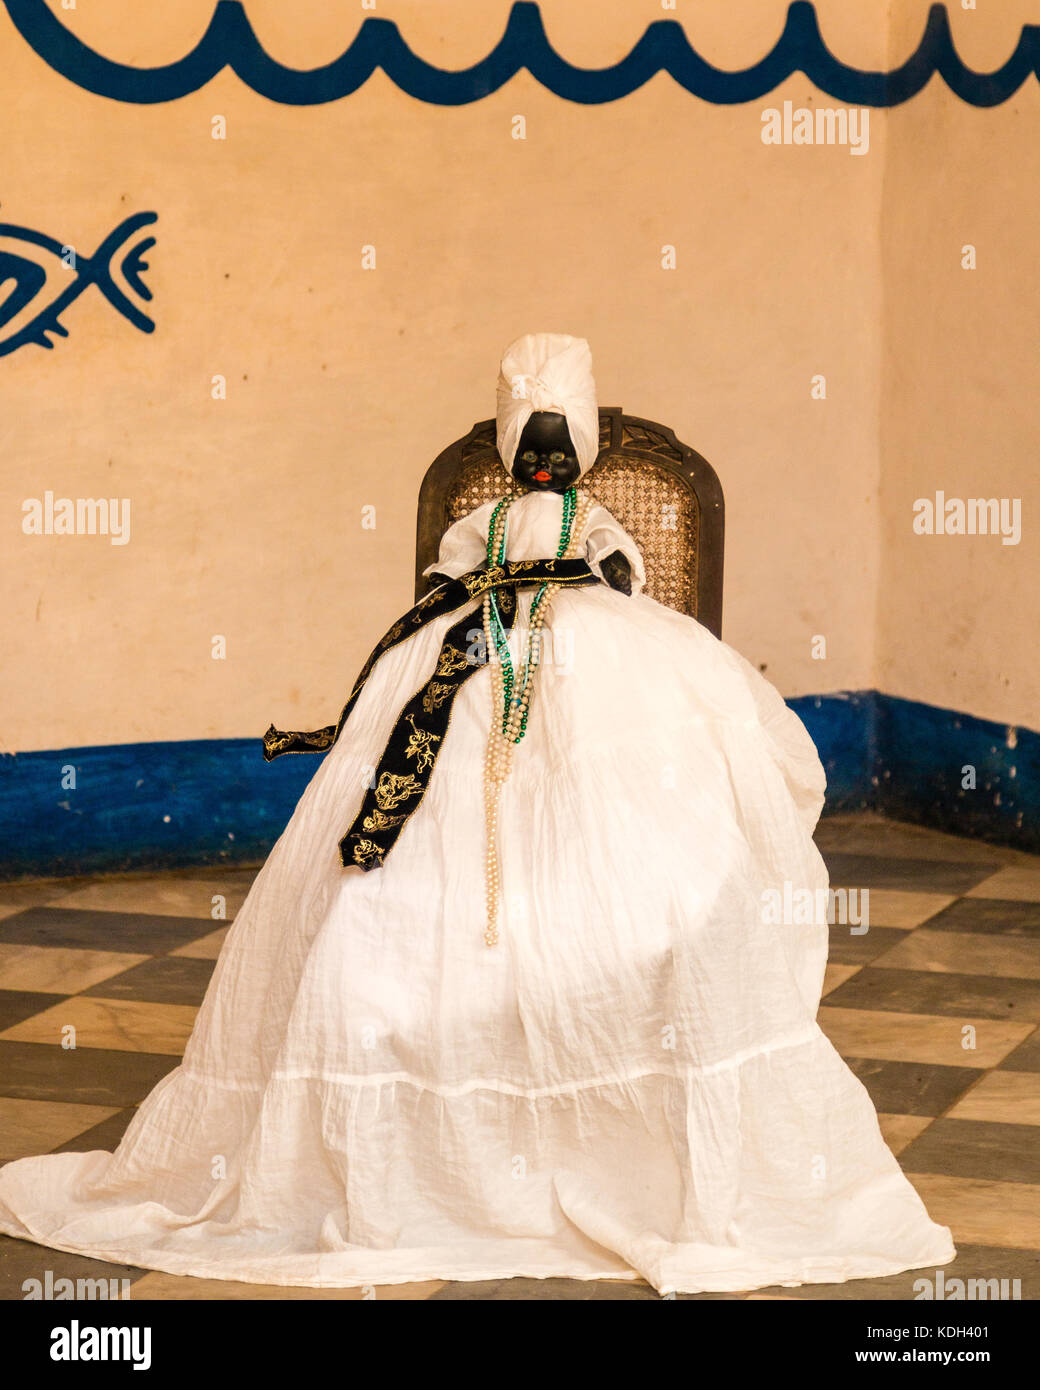 Santeria doll in the Santería Temple in Trinidad Cuba, Caribeean - Stock Image